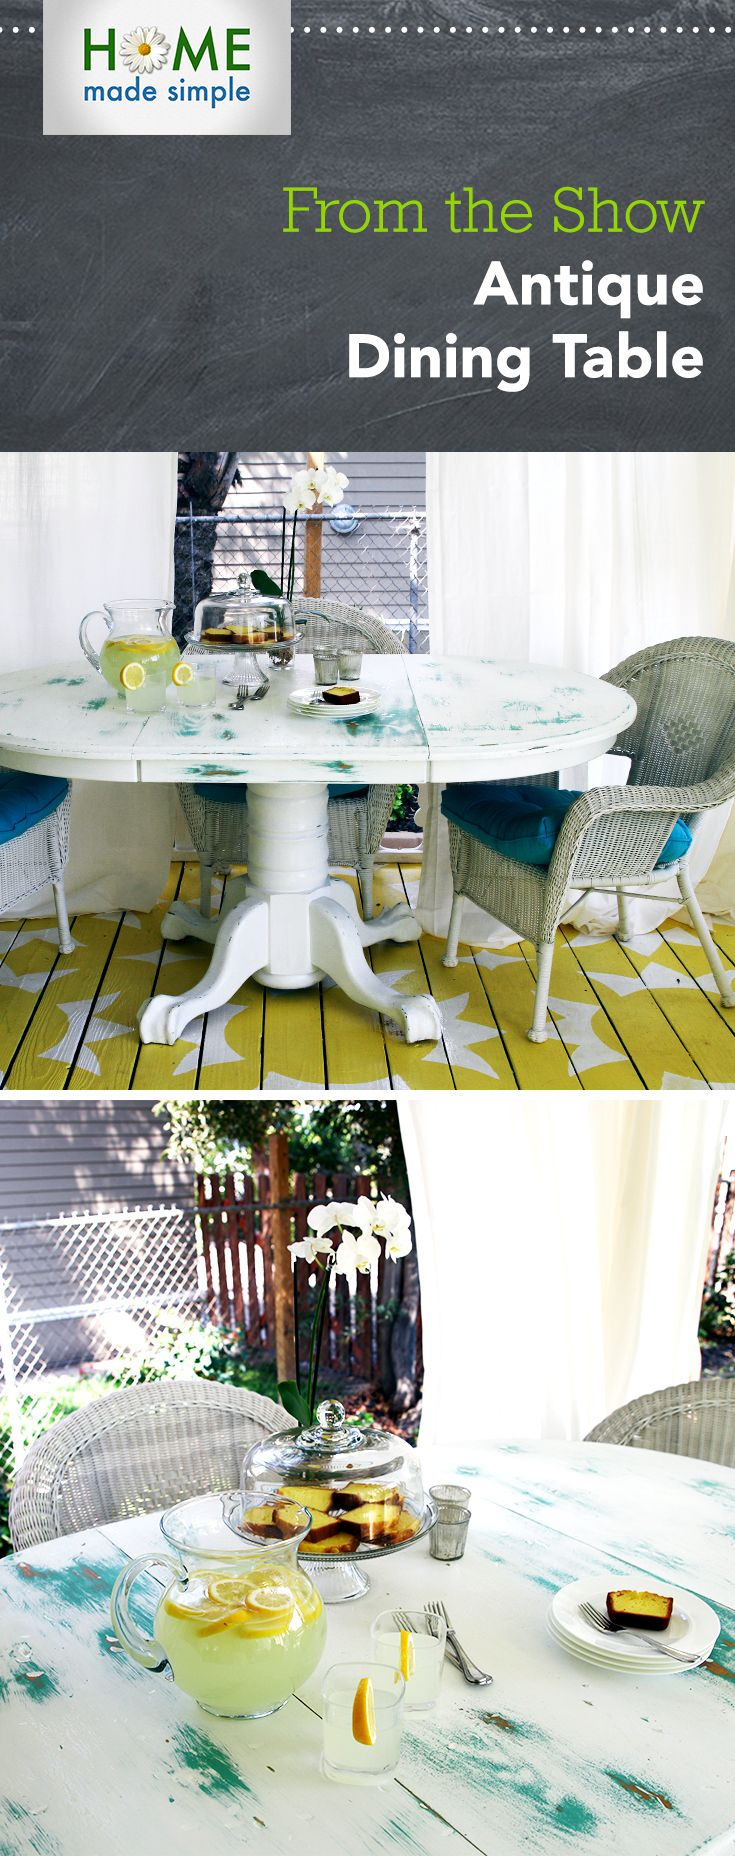 Give your dining table a rustic antiqued look with kenneth wingards step by step home made simplehome